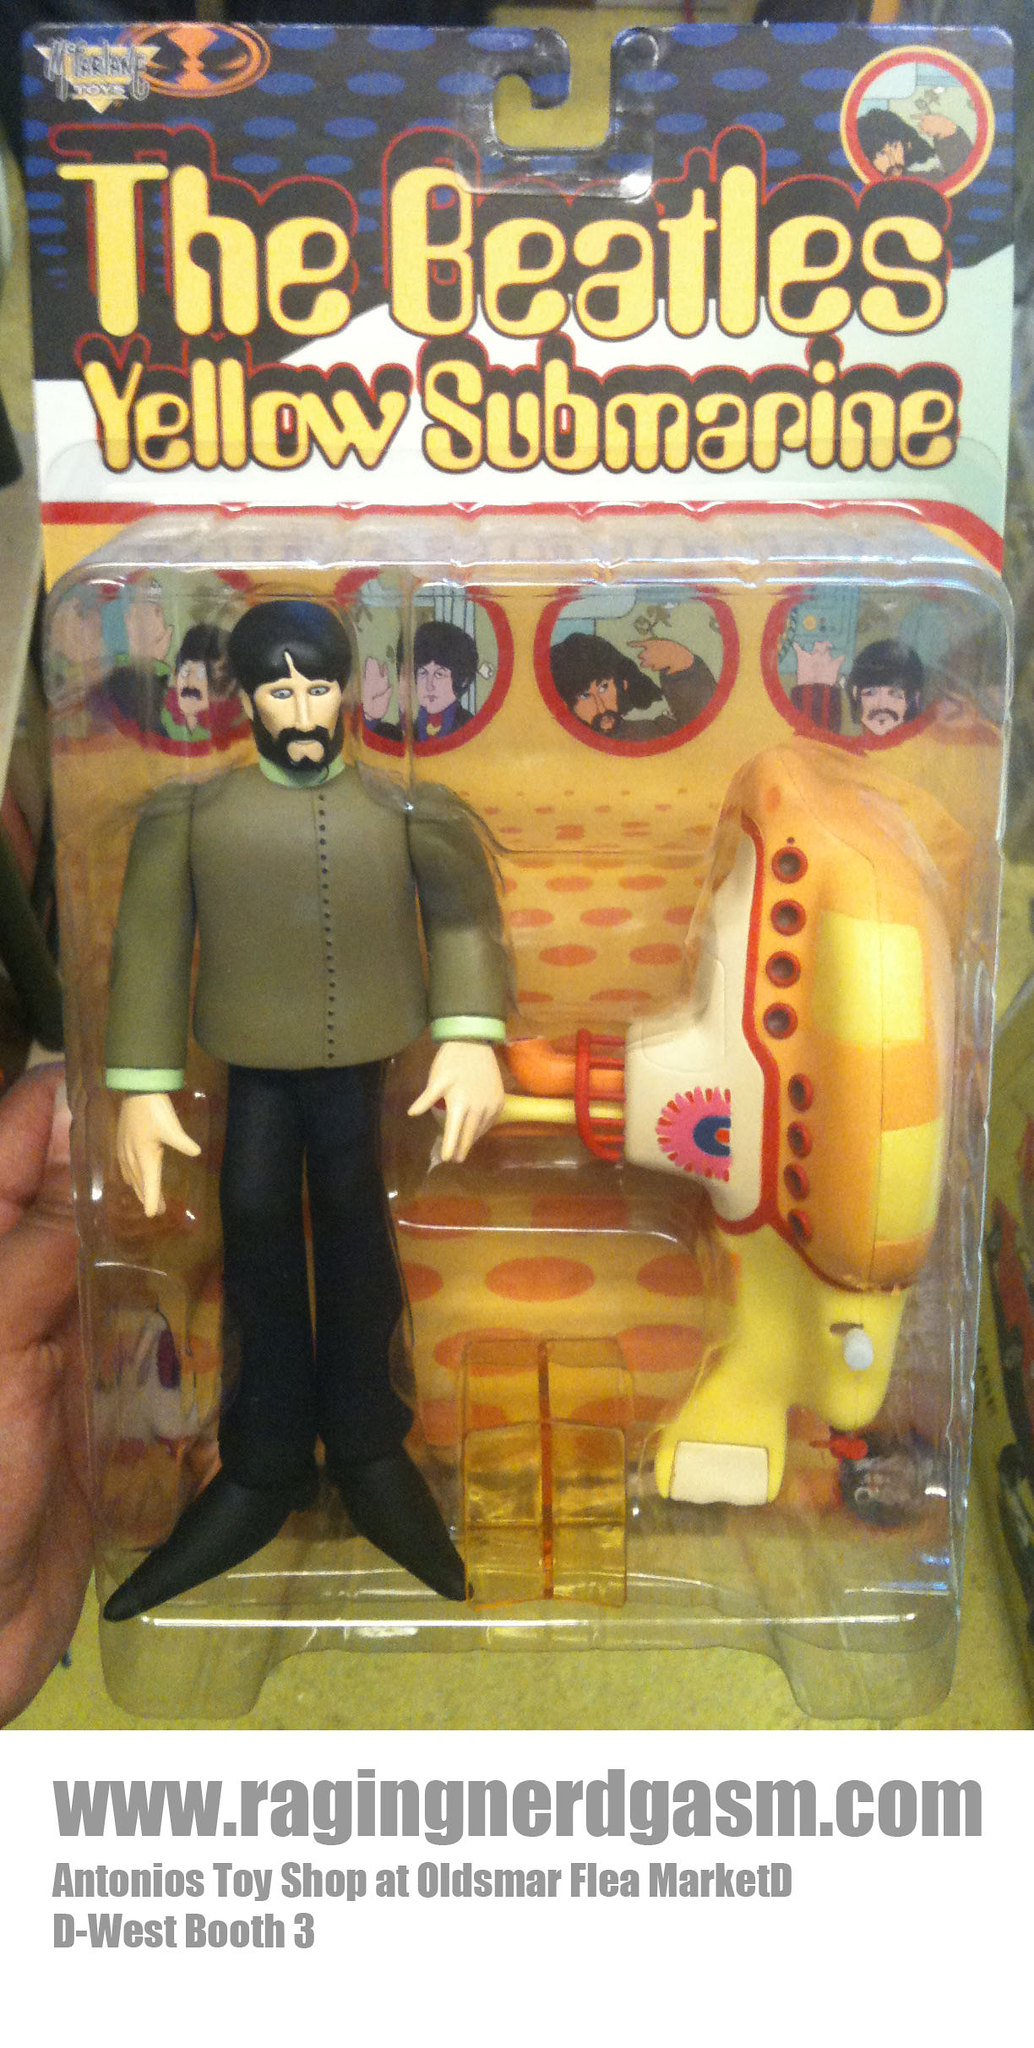 Mc Farlane ToysThe Beatles Yellow Submarine 012